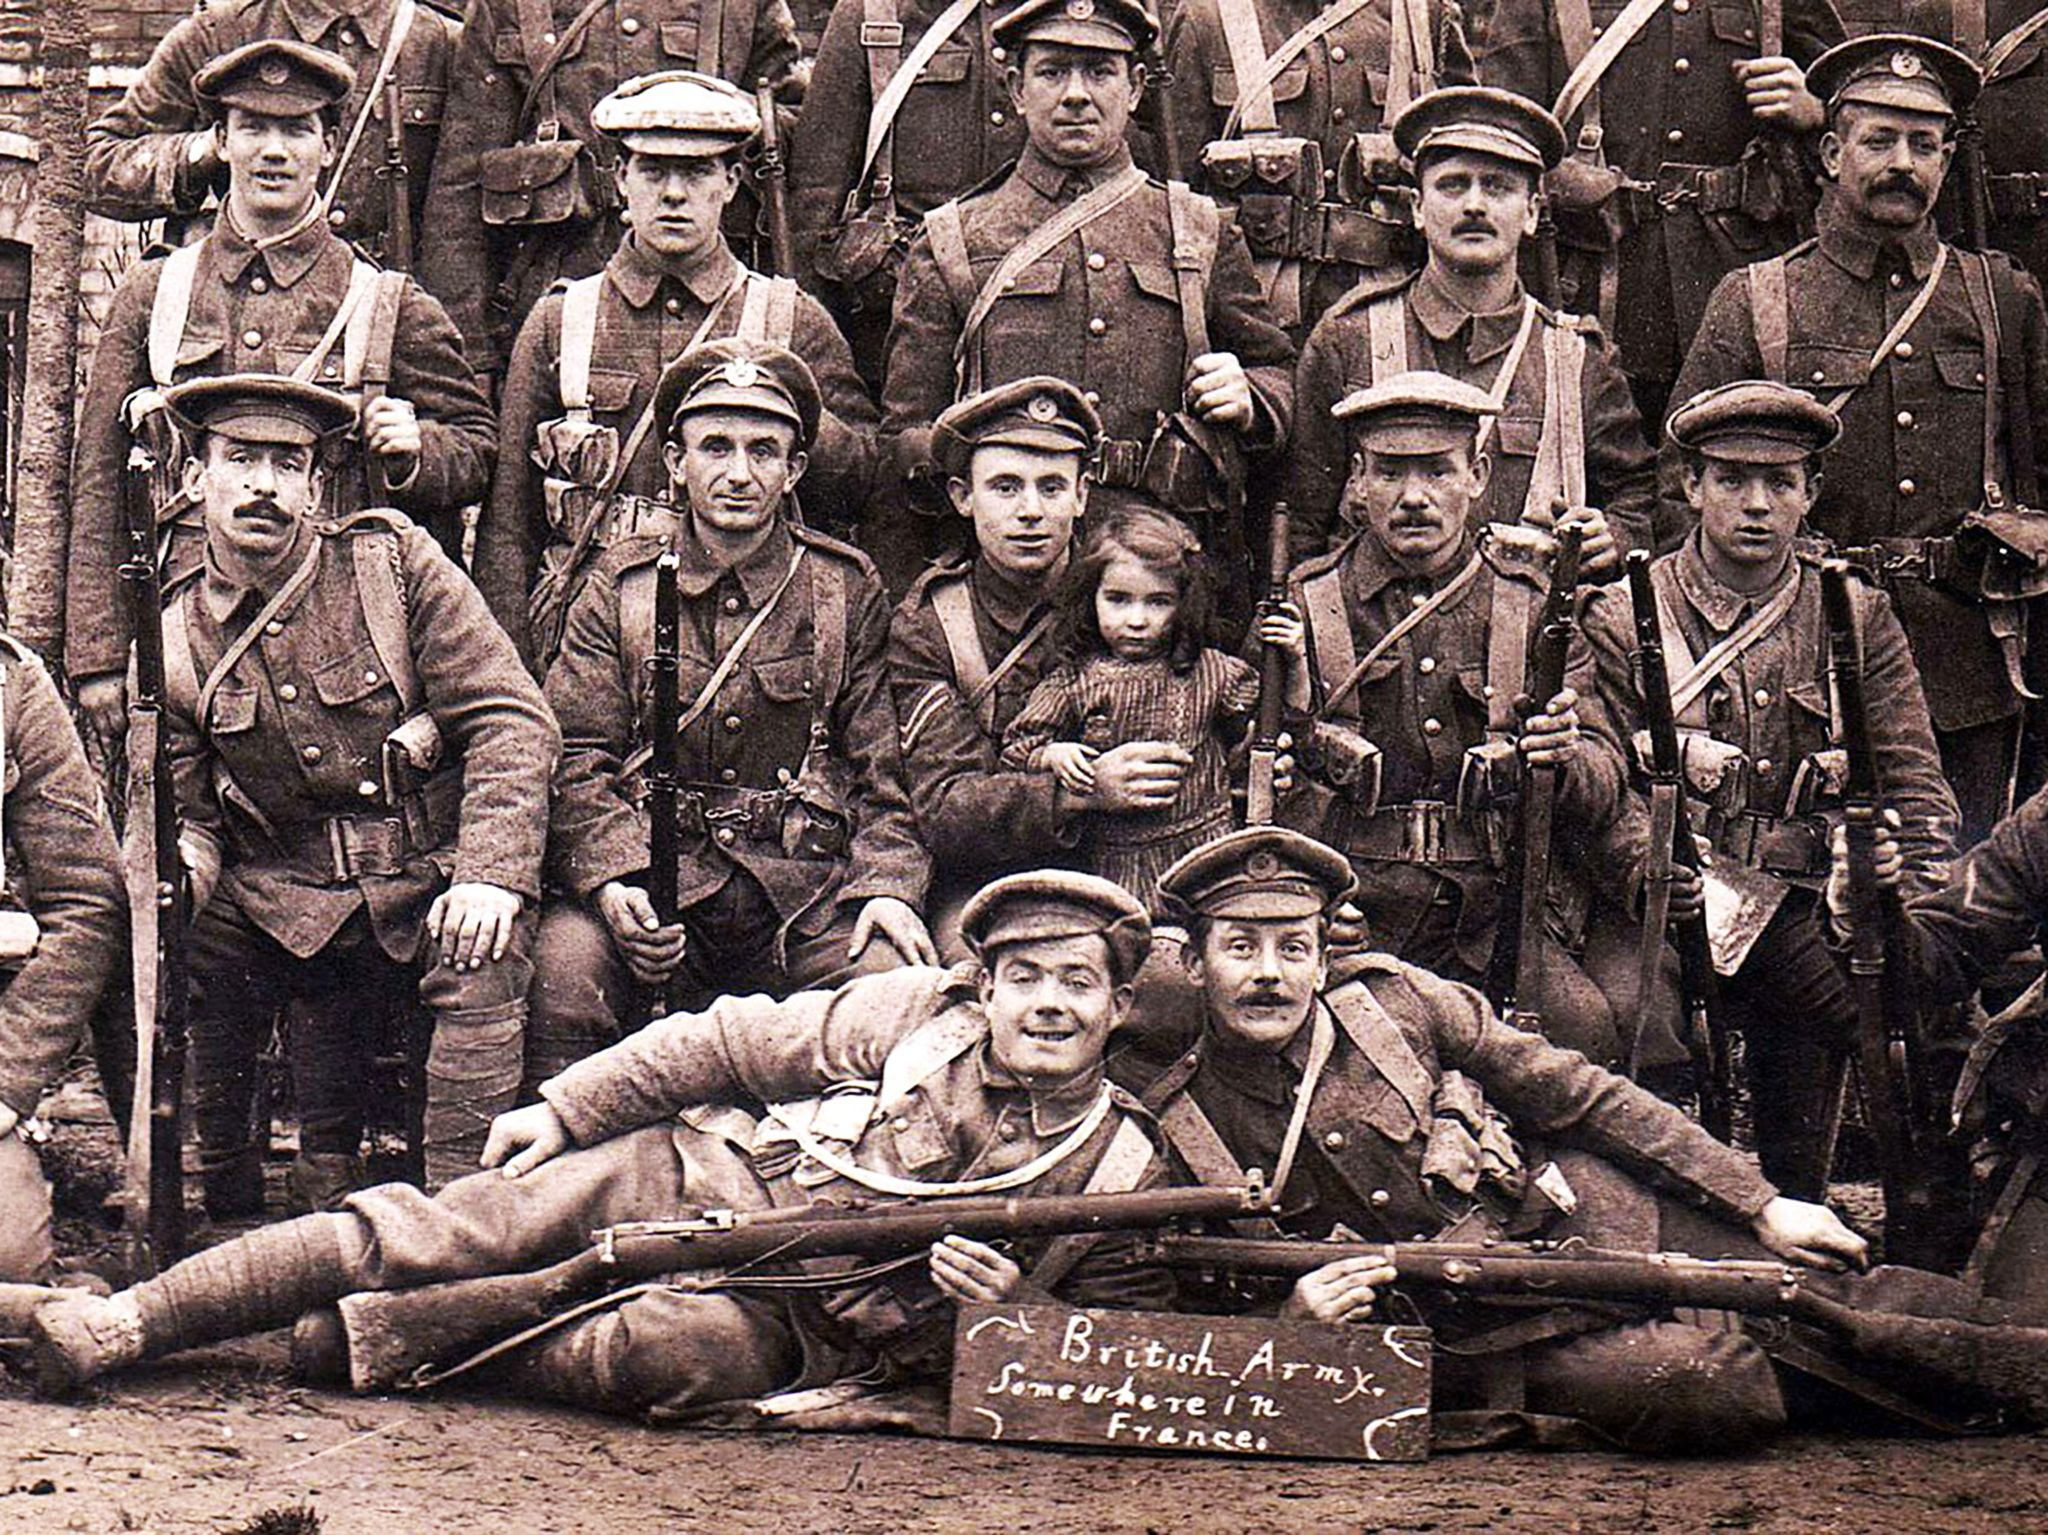 France:  Picture of the British Army. This image is from WWI: The Tunnels of Death. [Foto del giorno - novembre 2018]